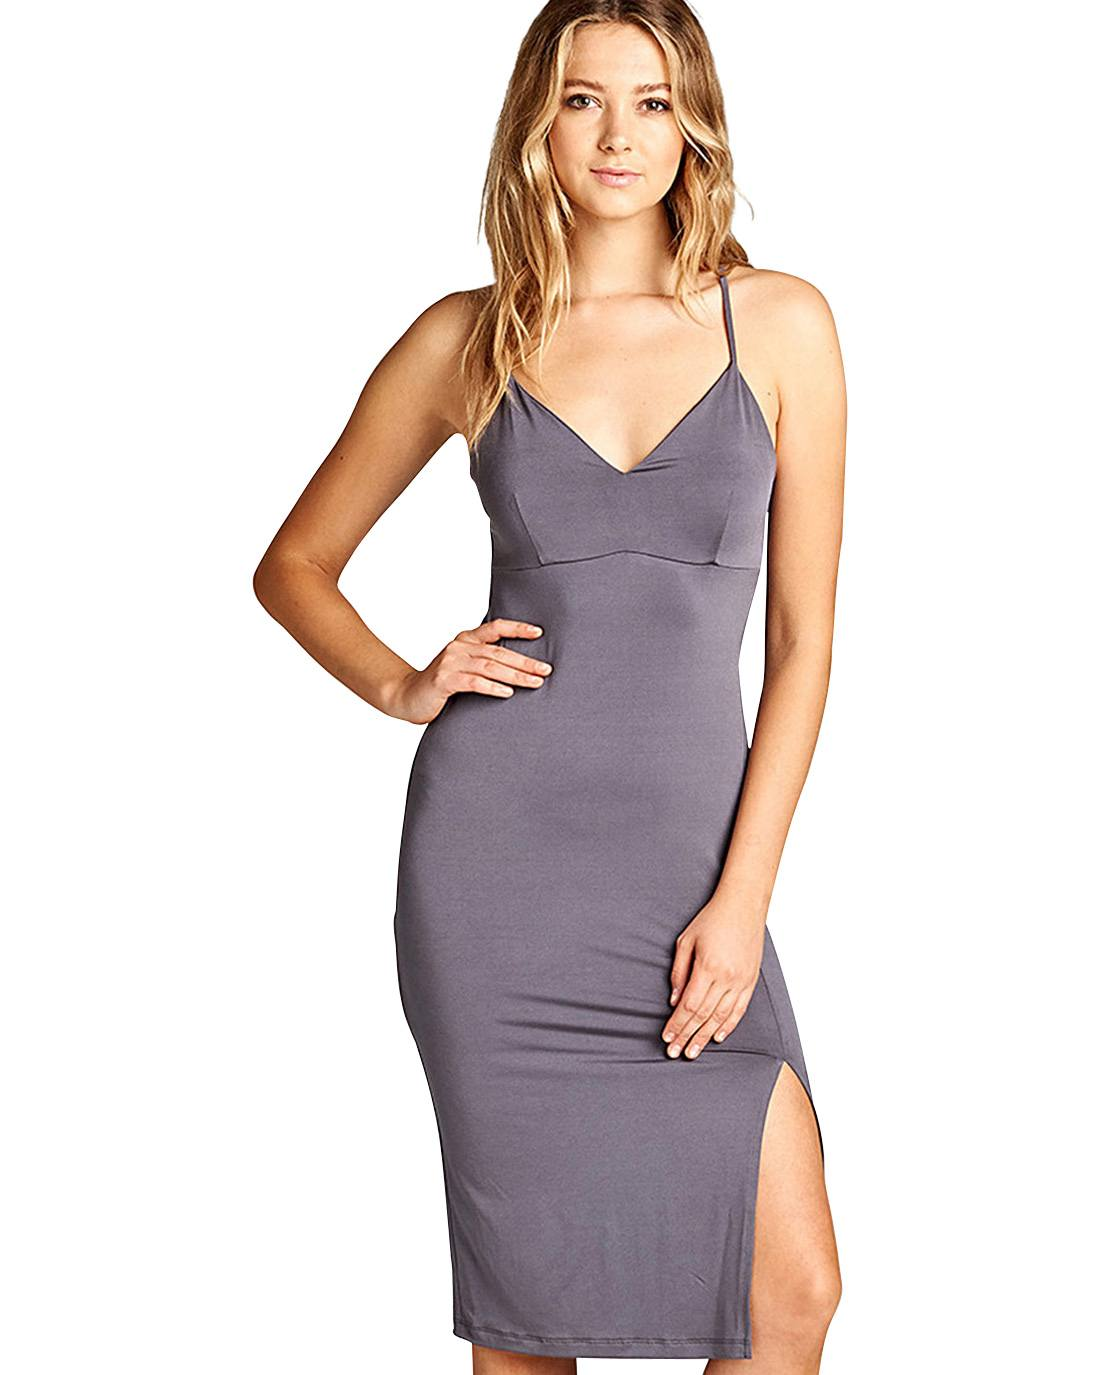 Adjustable cami straps dress-S-MY UPSCALE STORE